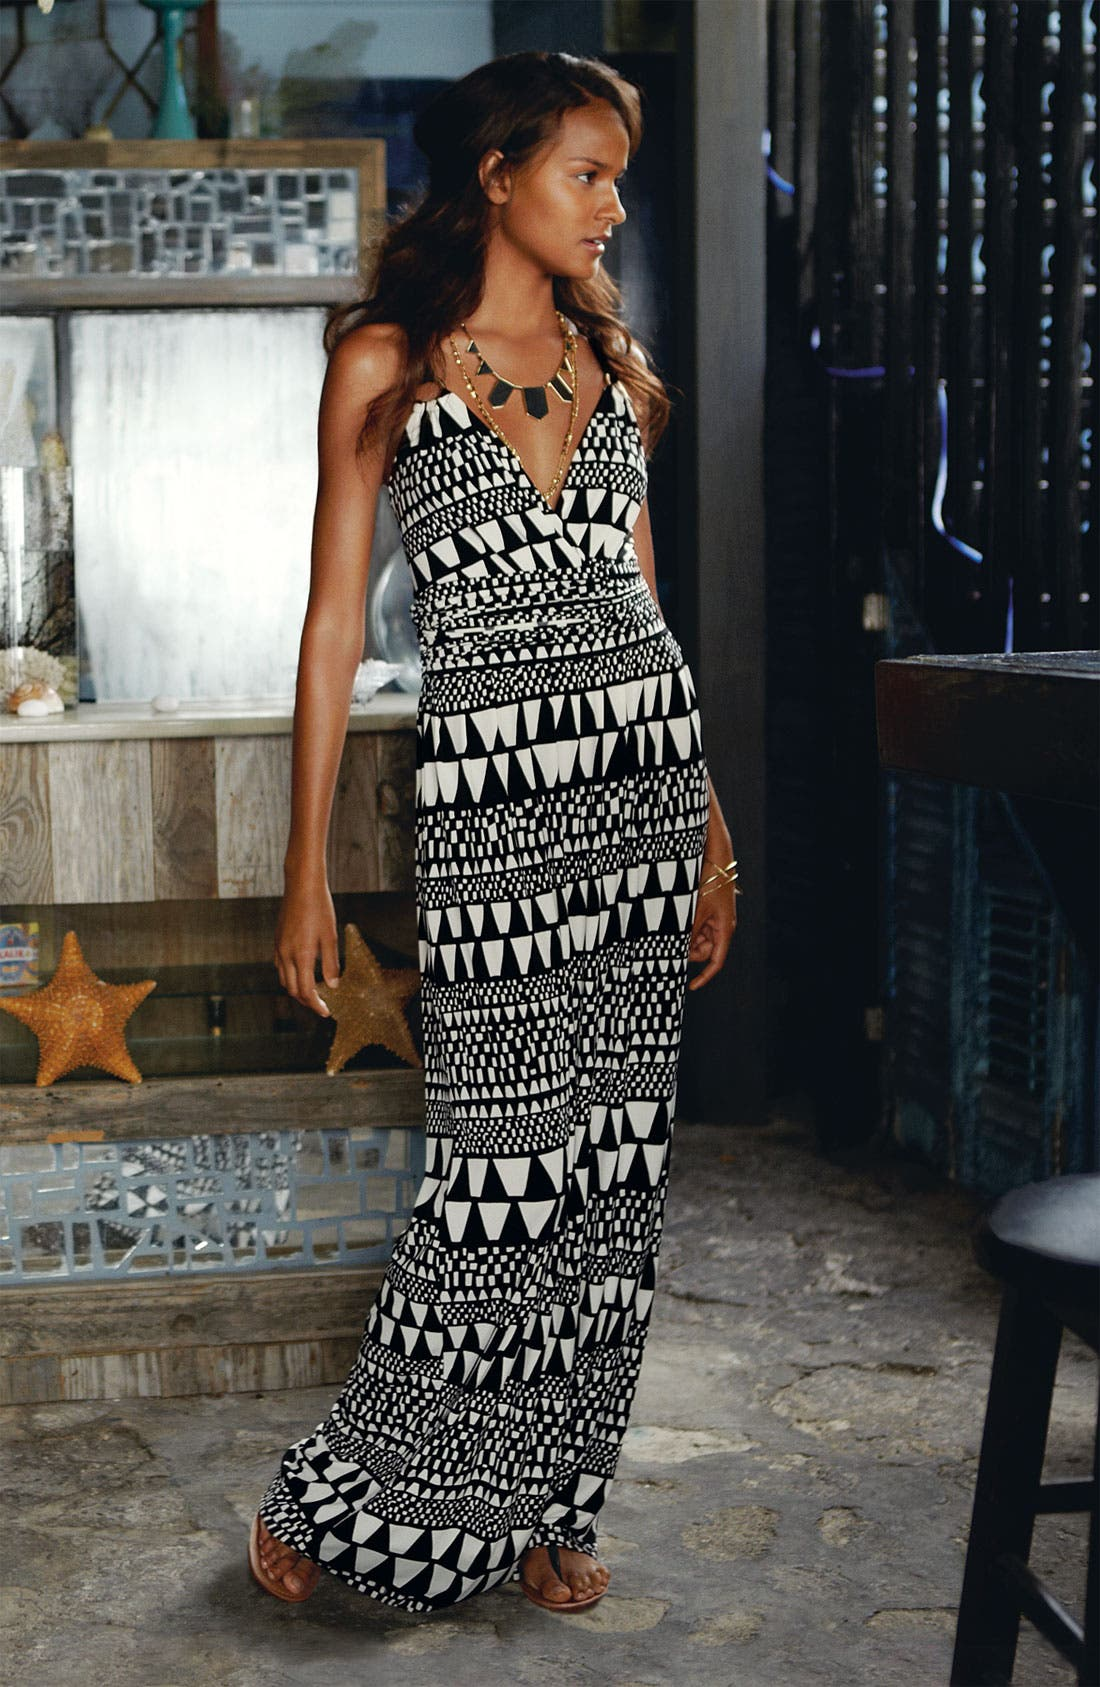 Alternate Image 1 Selected - Vince Camuto Maxi Dress & Accessories